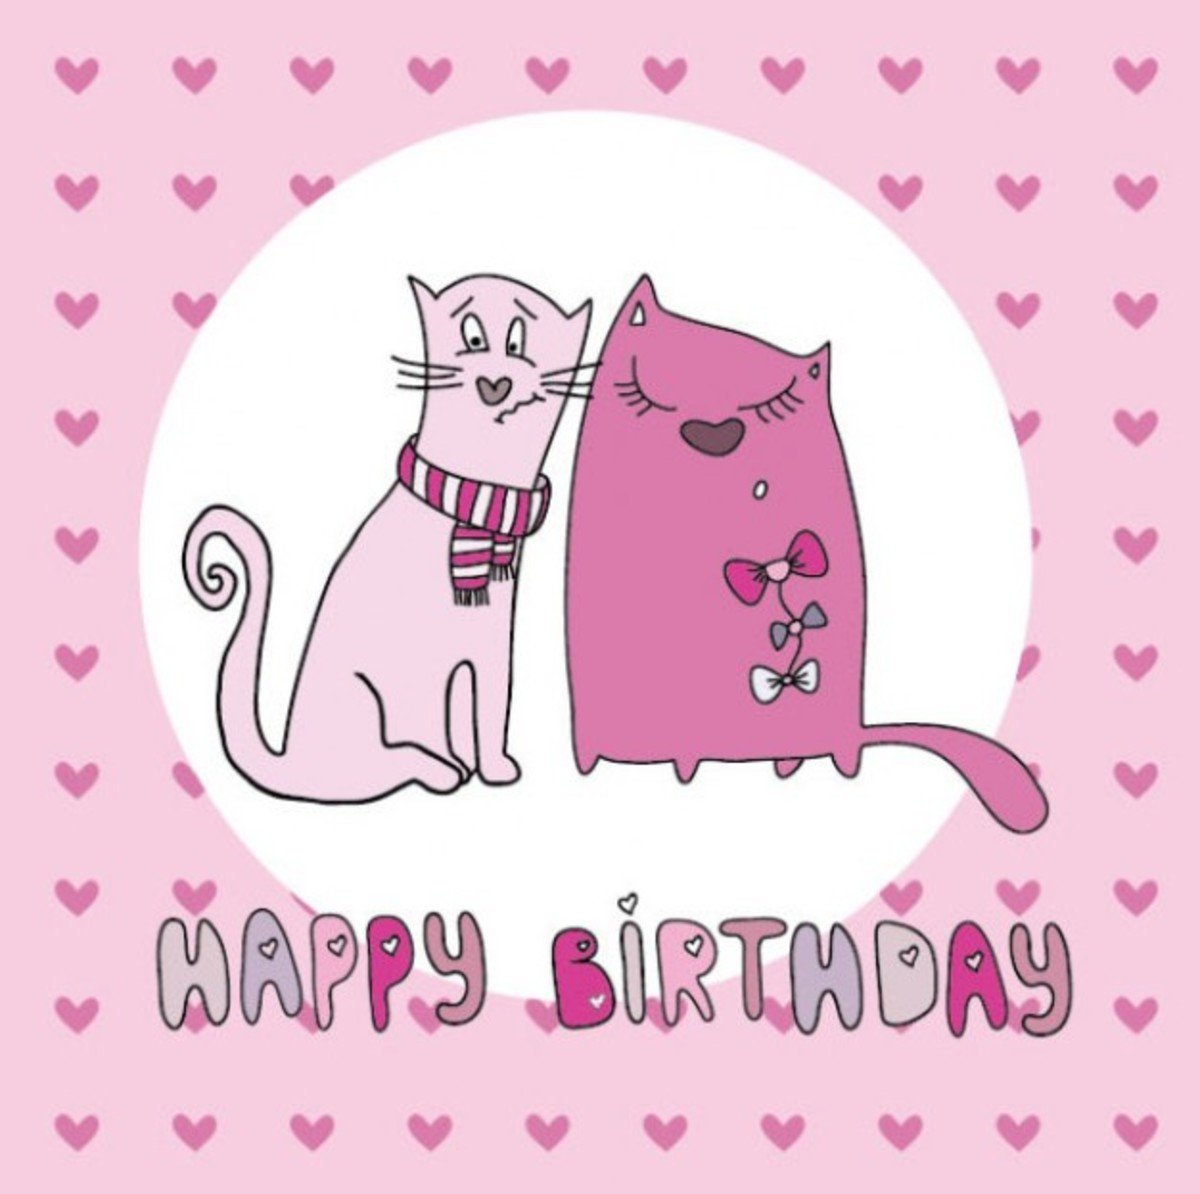 Happy Birthday with Two Cats